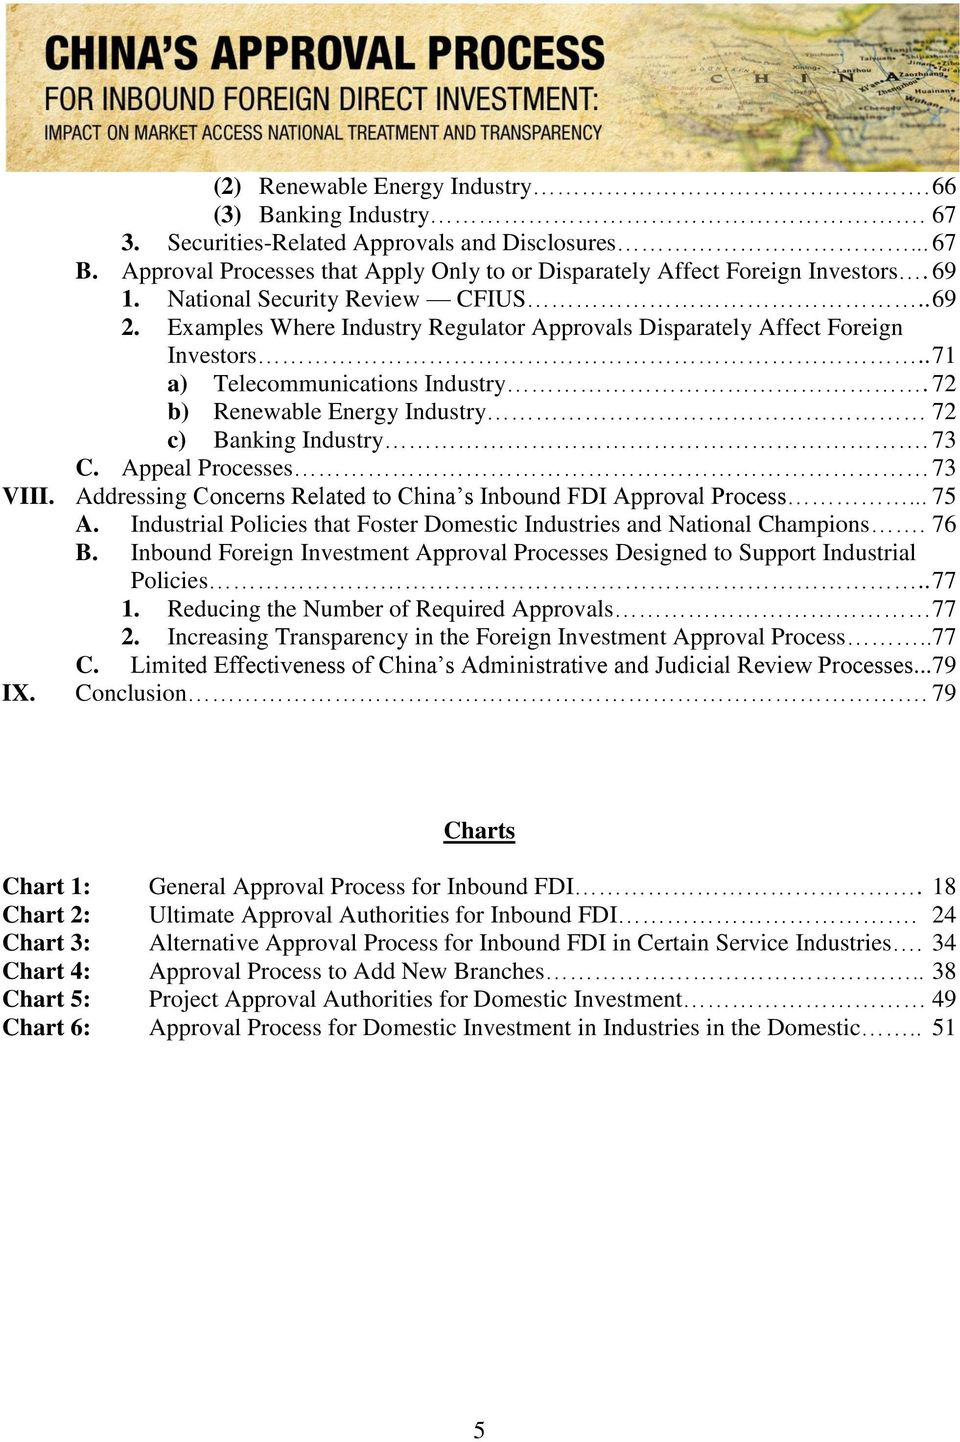 72 b) Renewable Energy Industry 72 c) Banking Industry. 73 C. Appeal Processes 73 VIII. Addressing Concerns Related to China s Inbound FDI Approval Process... 75 A.